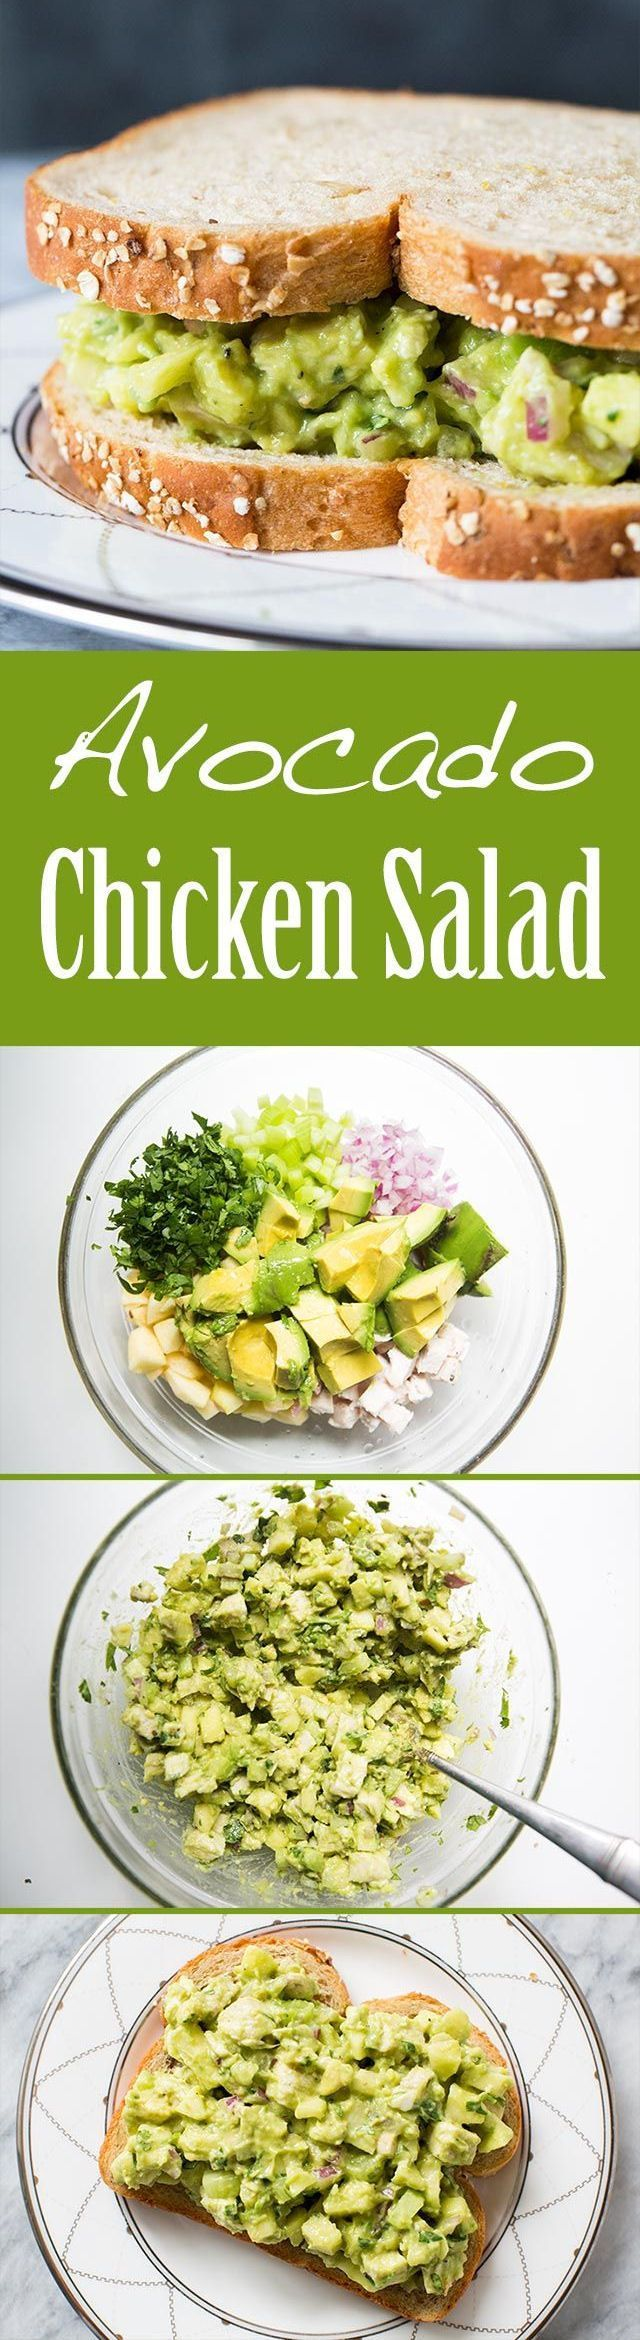 Avocado Chicken Salad - Avocado chicken salad with avocado, chopped cooked chicken, apple, celery, and onion. No Mayo!